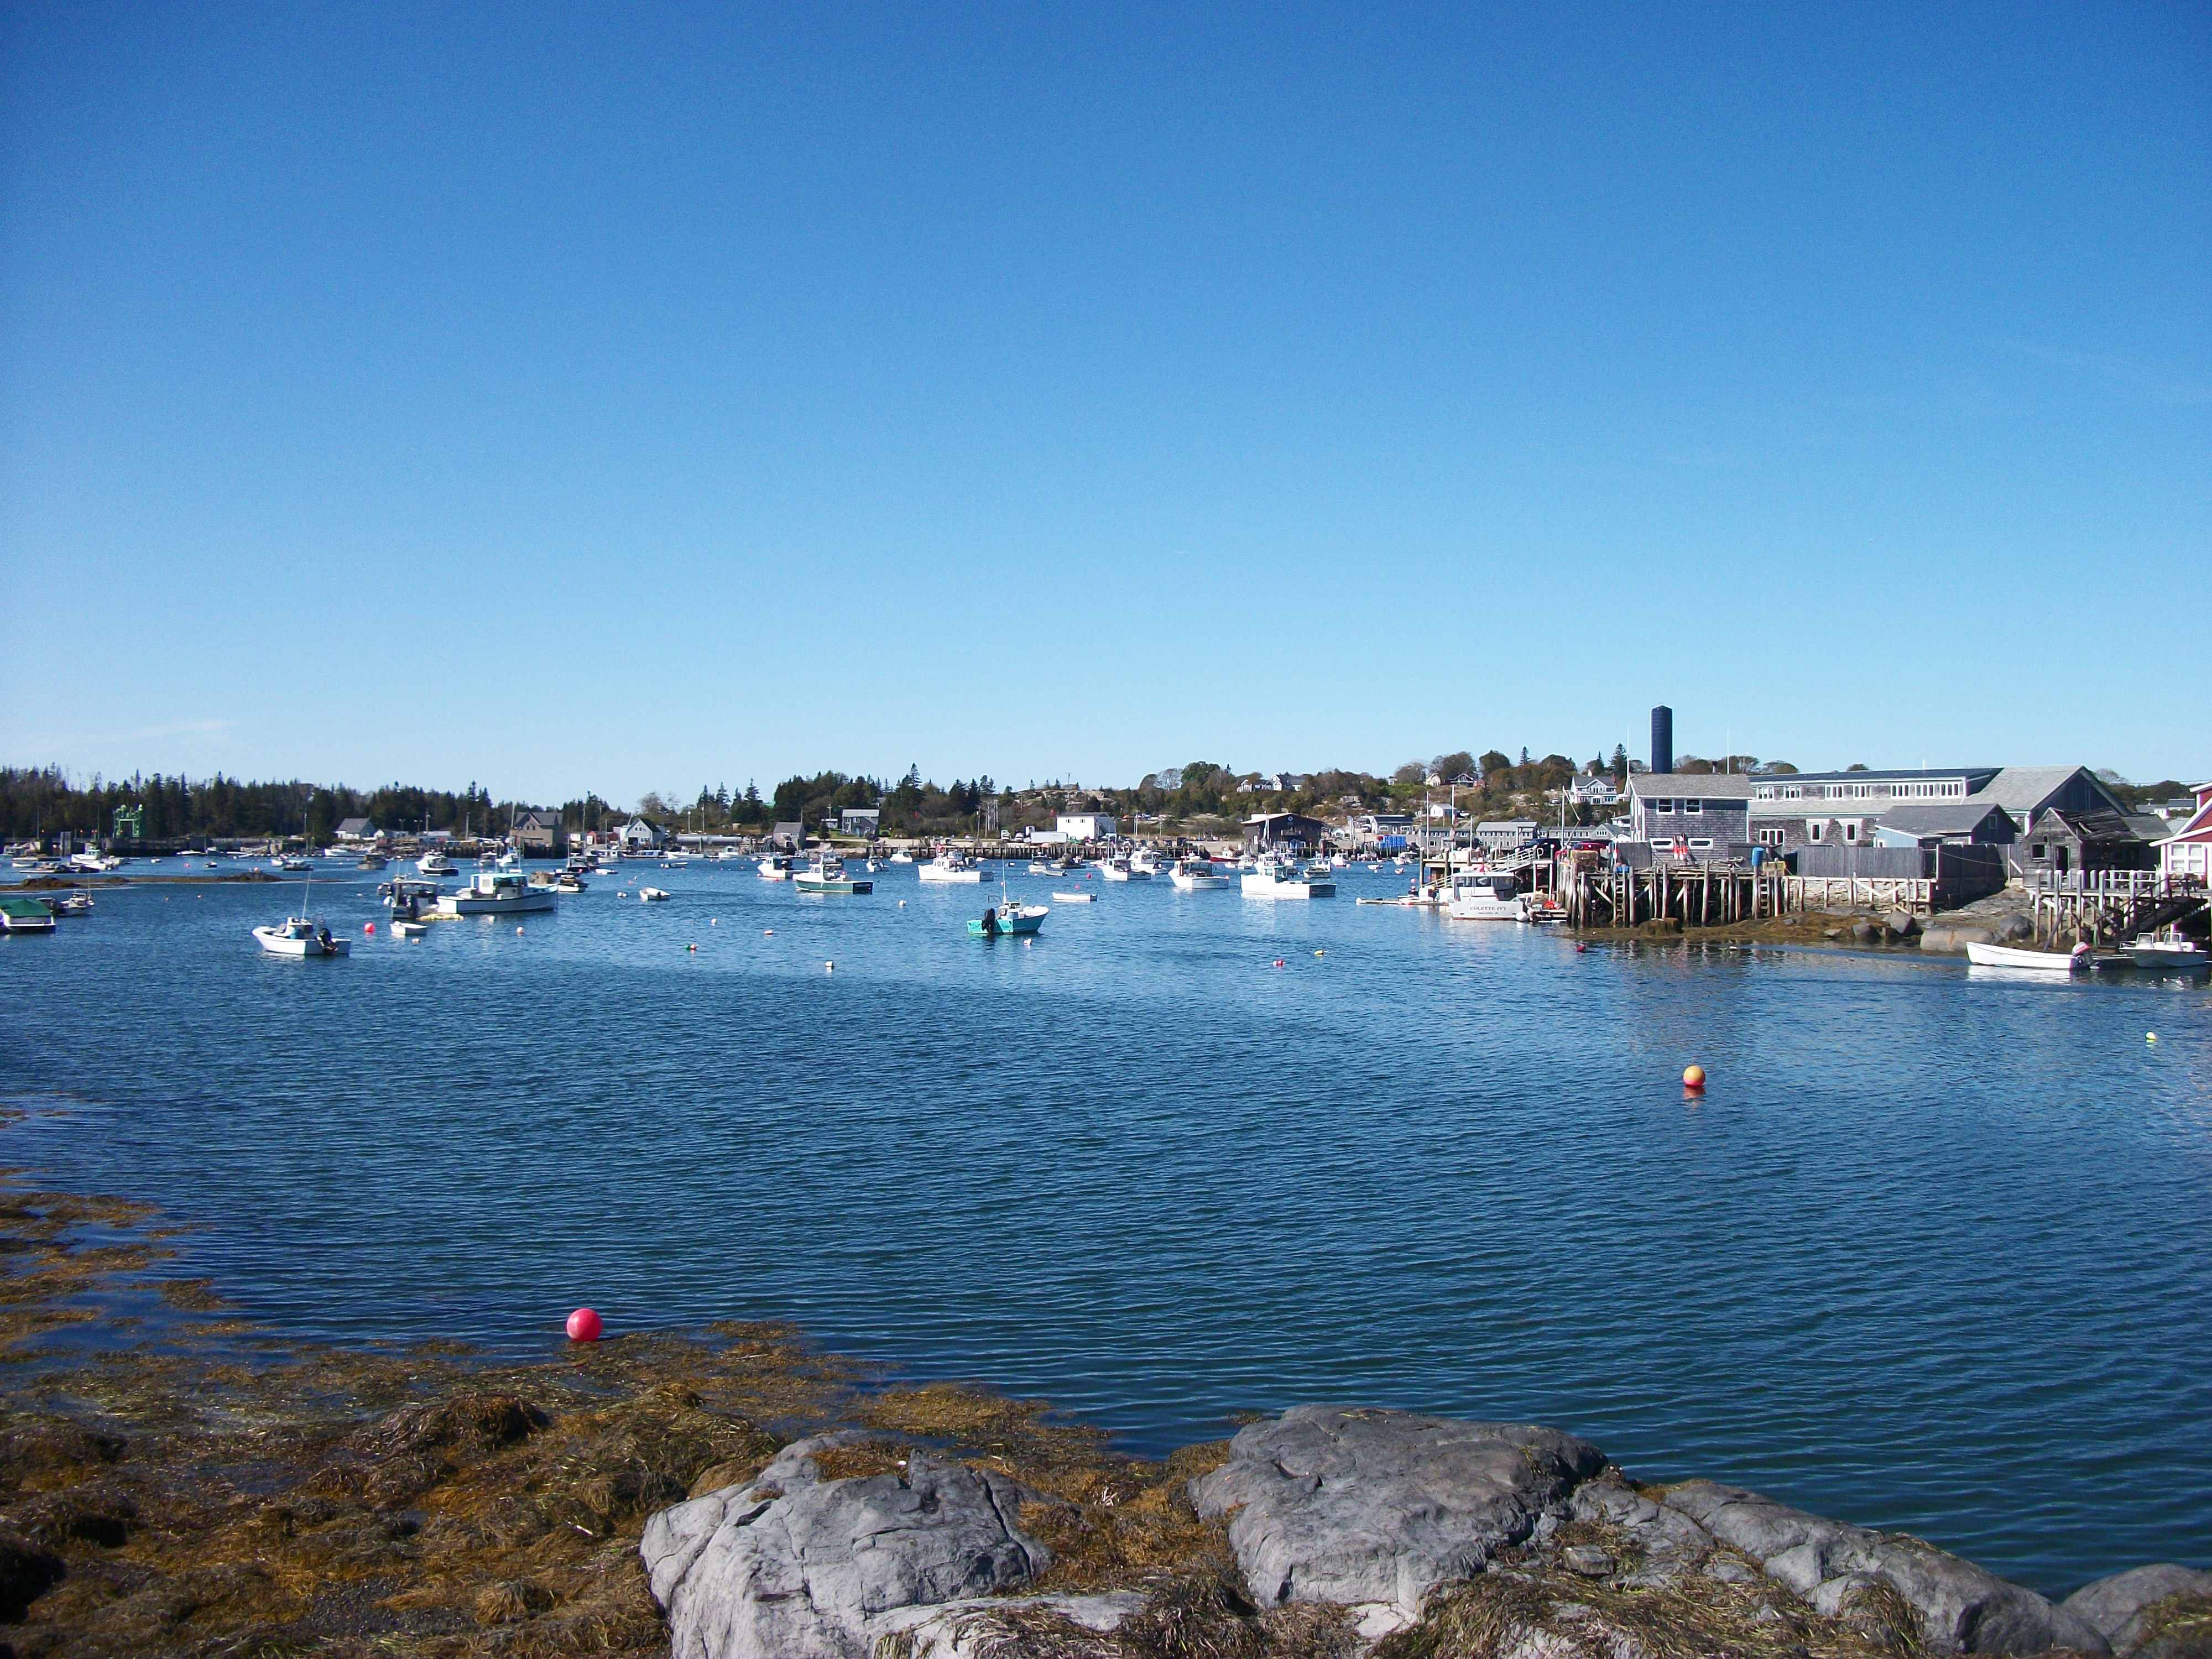 Vinalhaven from Indian creek